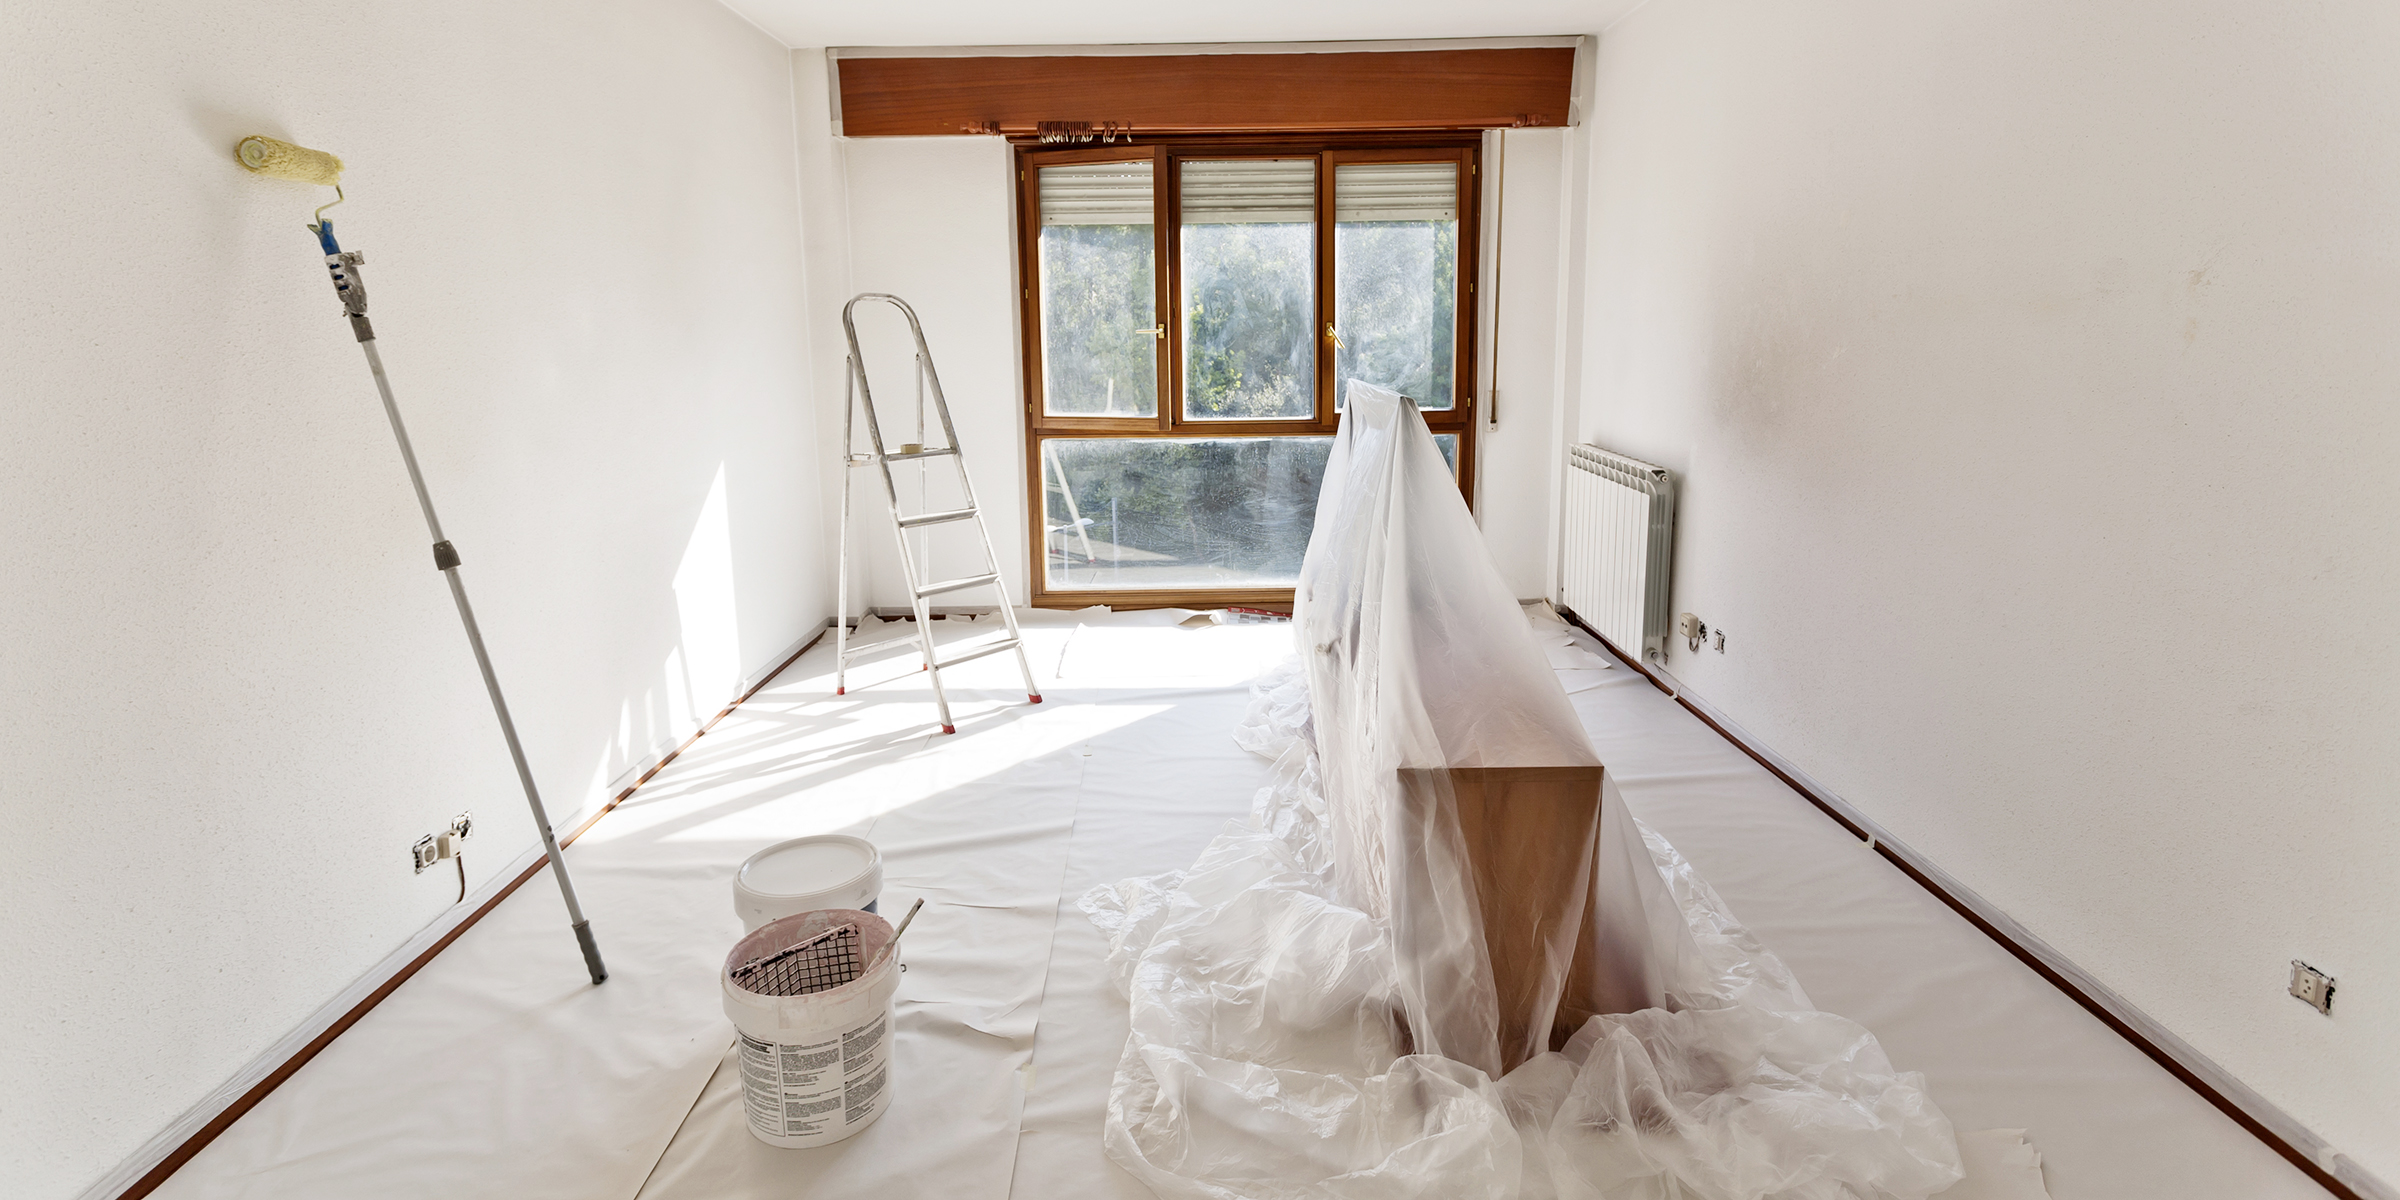 How To Paint A Room Tips On How To Paint A Wall Ceiling Trim And More